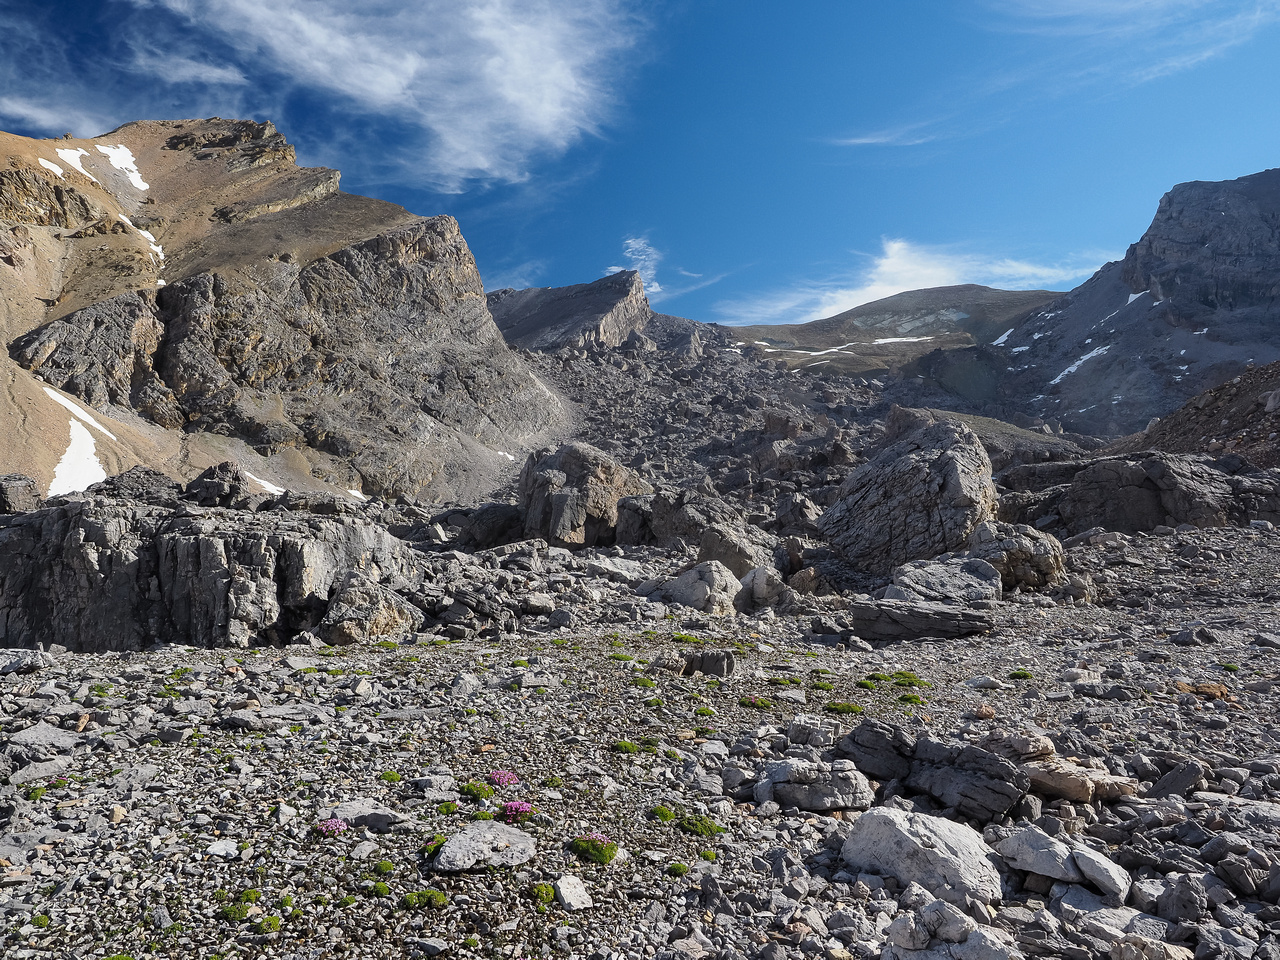 The huge boulder field between Bobac and Watermelon with Bobac's lower flank at left.